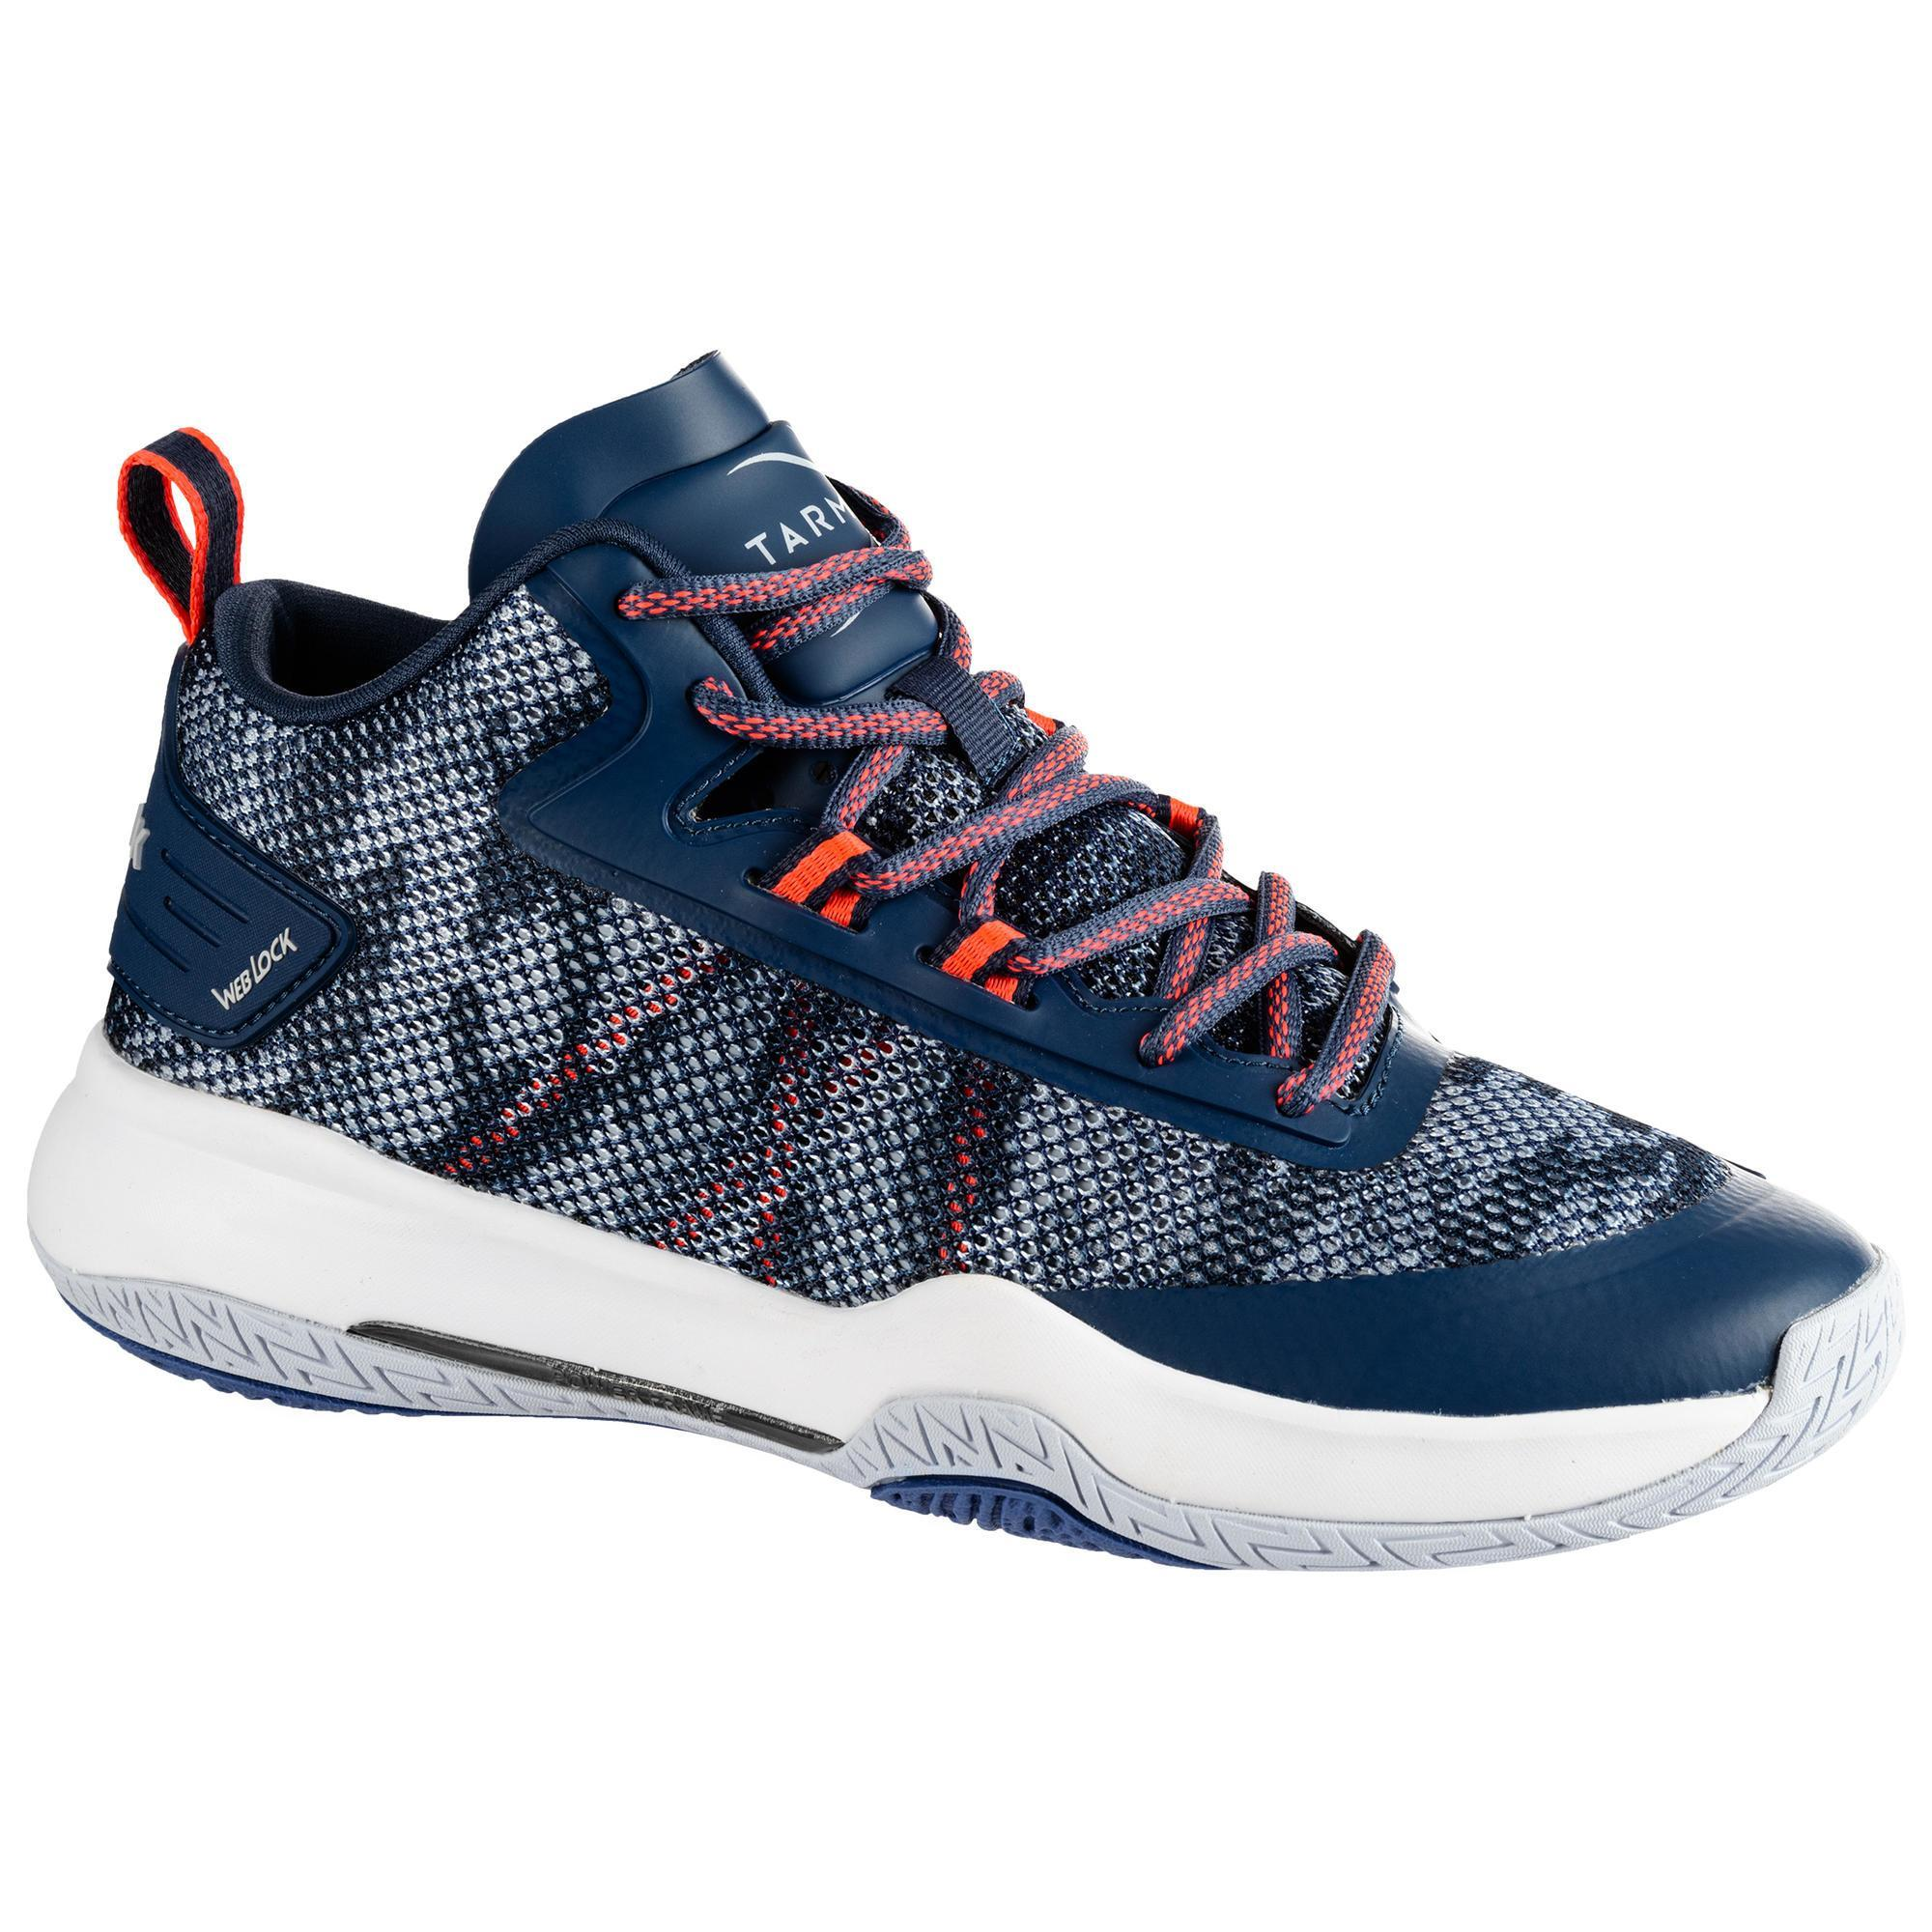 run shoes detailed look online store Chaussures de basketball femme | Chaussures de basket femme ...